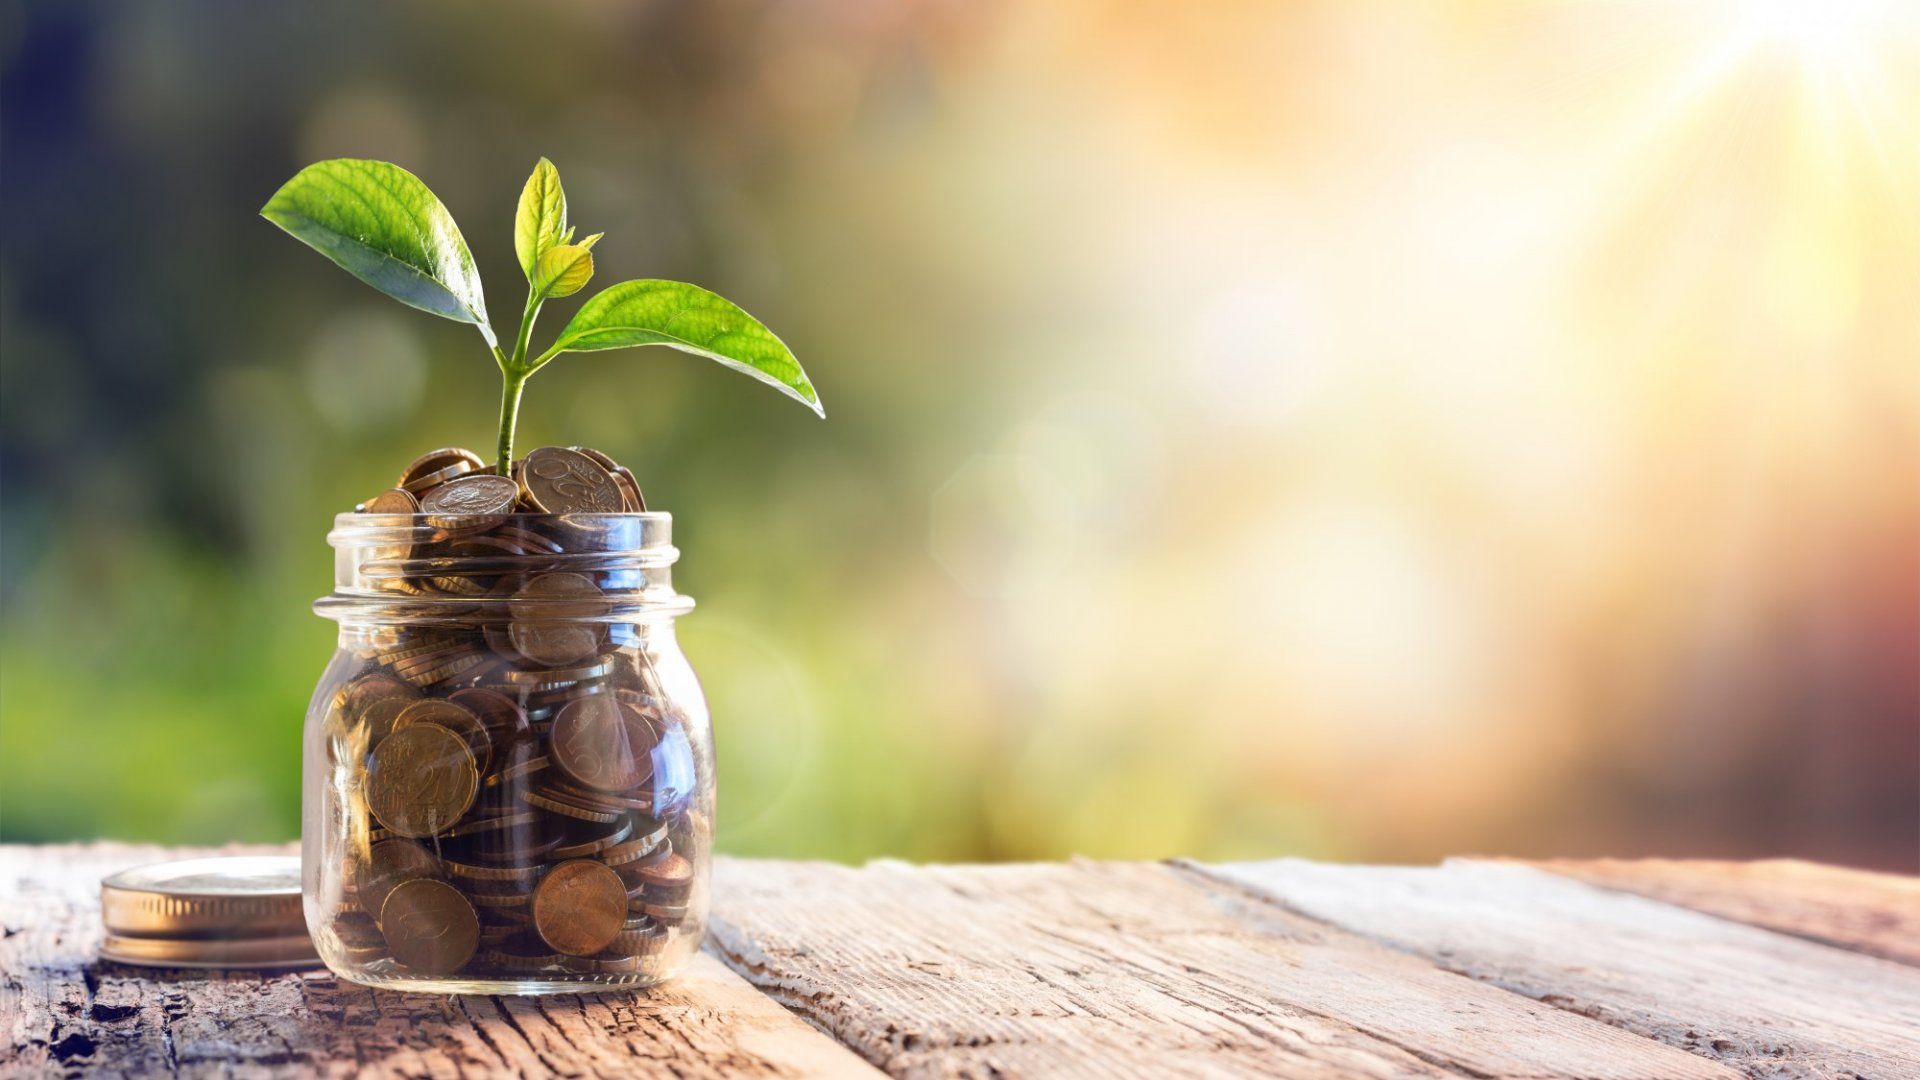 Is It Time to Raise VC Funding? Ask Yourself These 4 Questions to Find Out